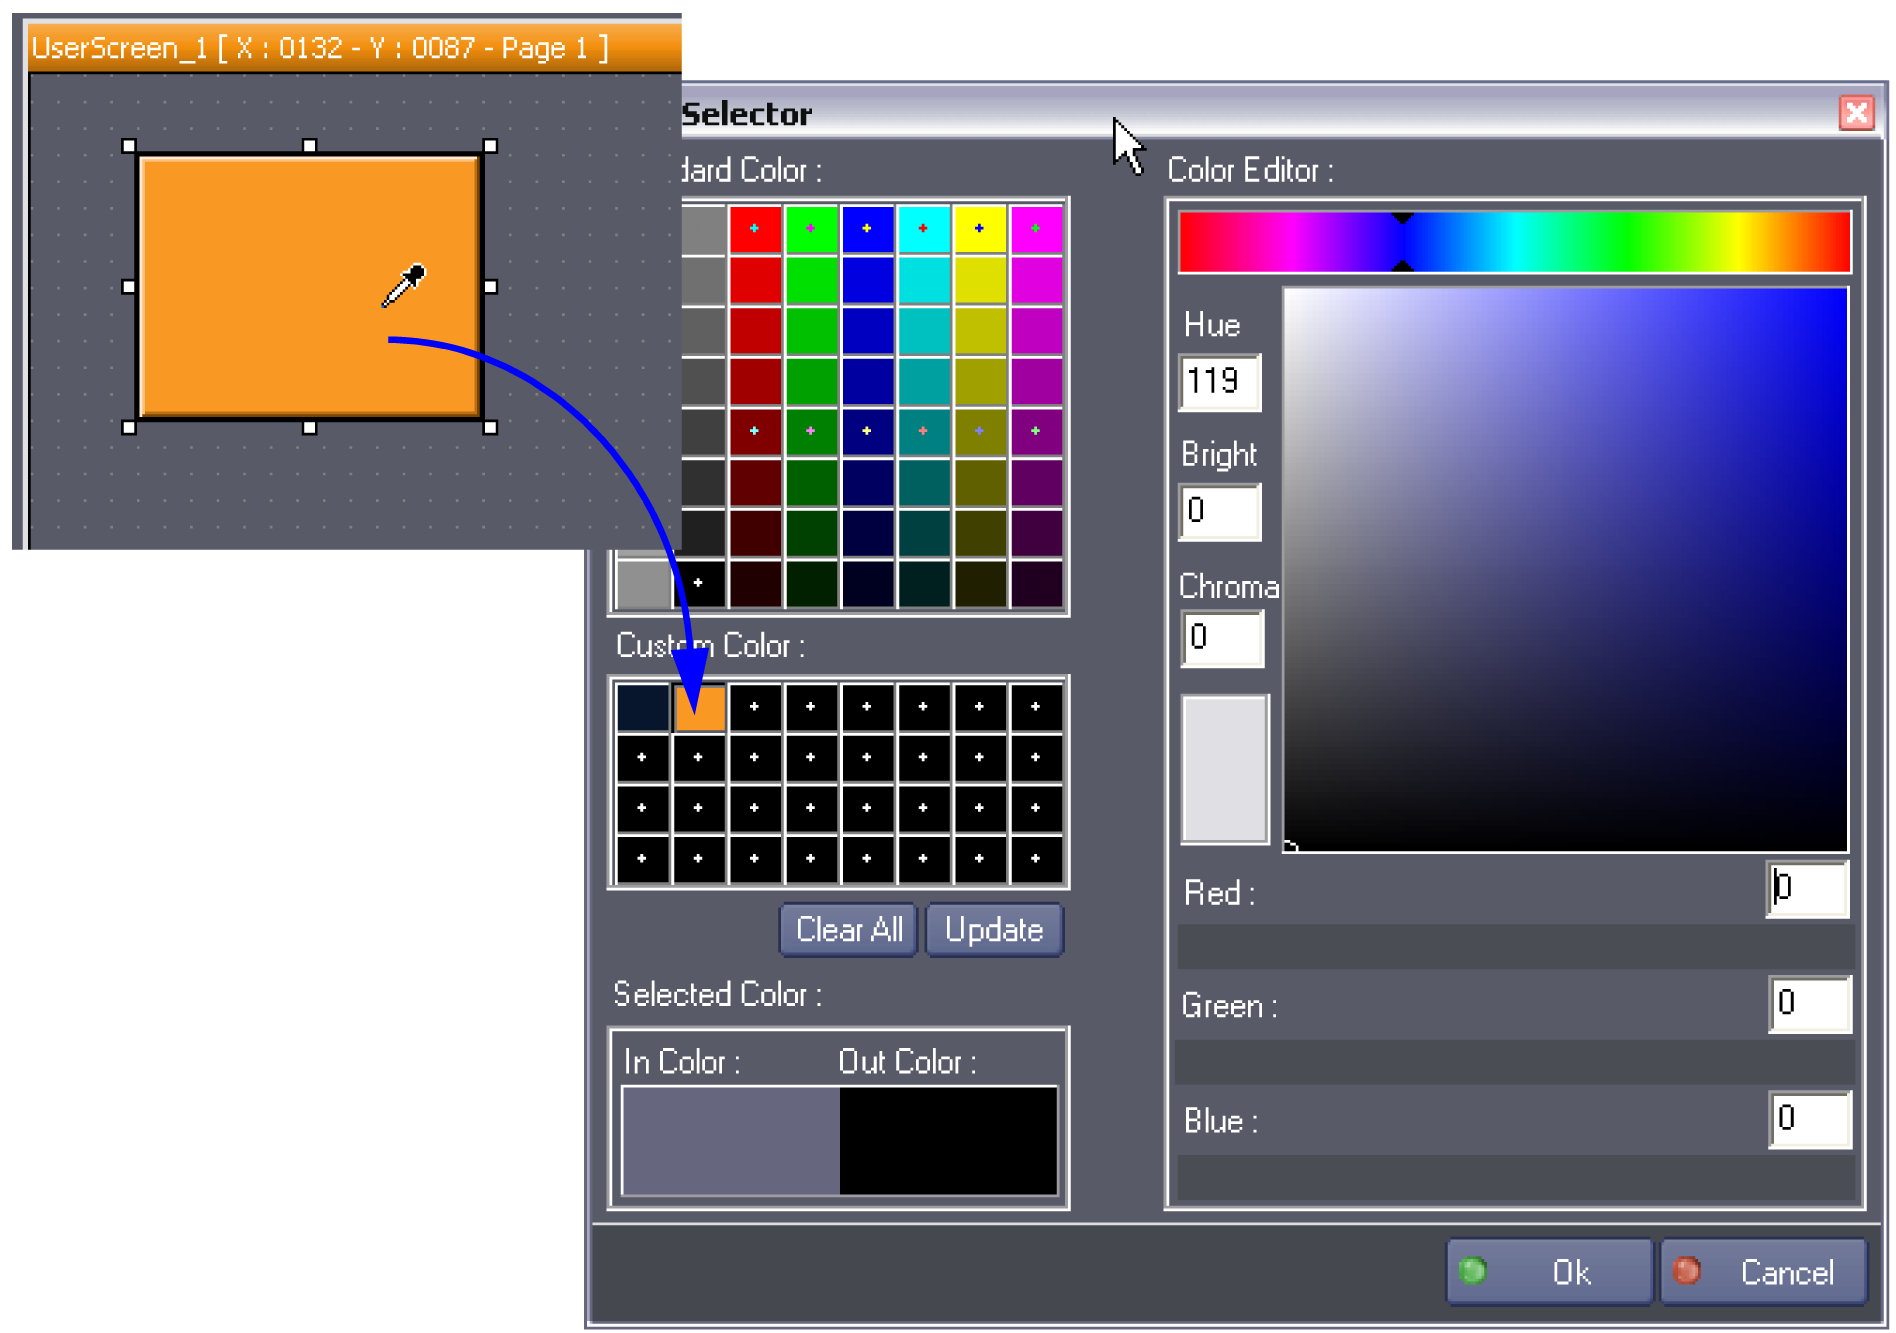 Define a new color in the Color Editor and save it as a Custom Color by